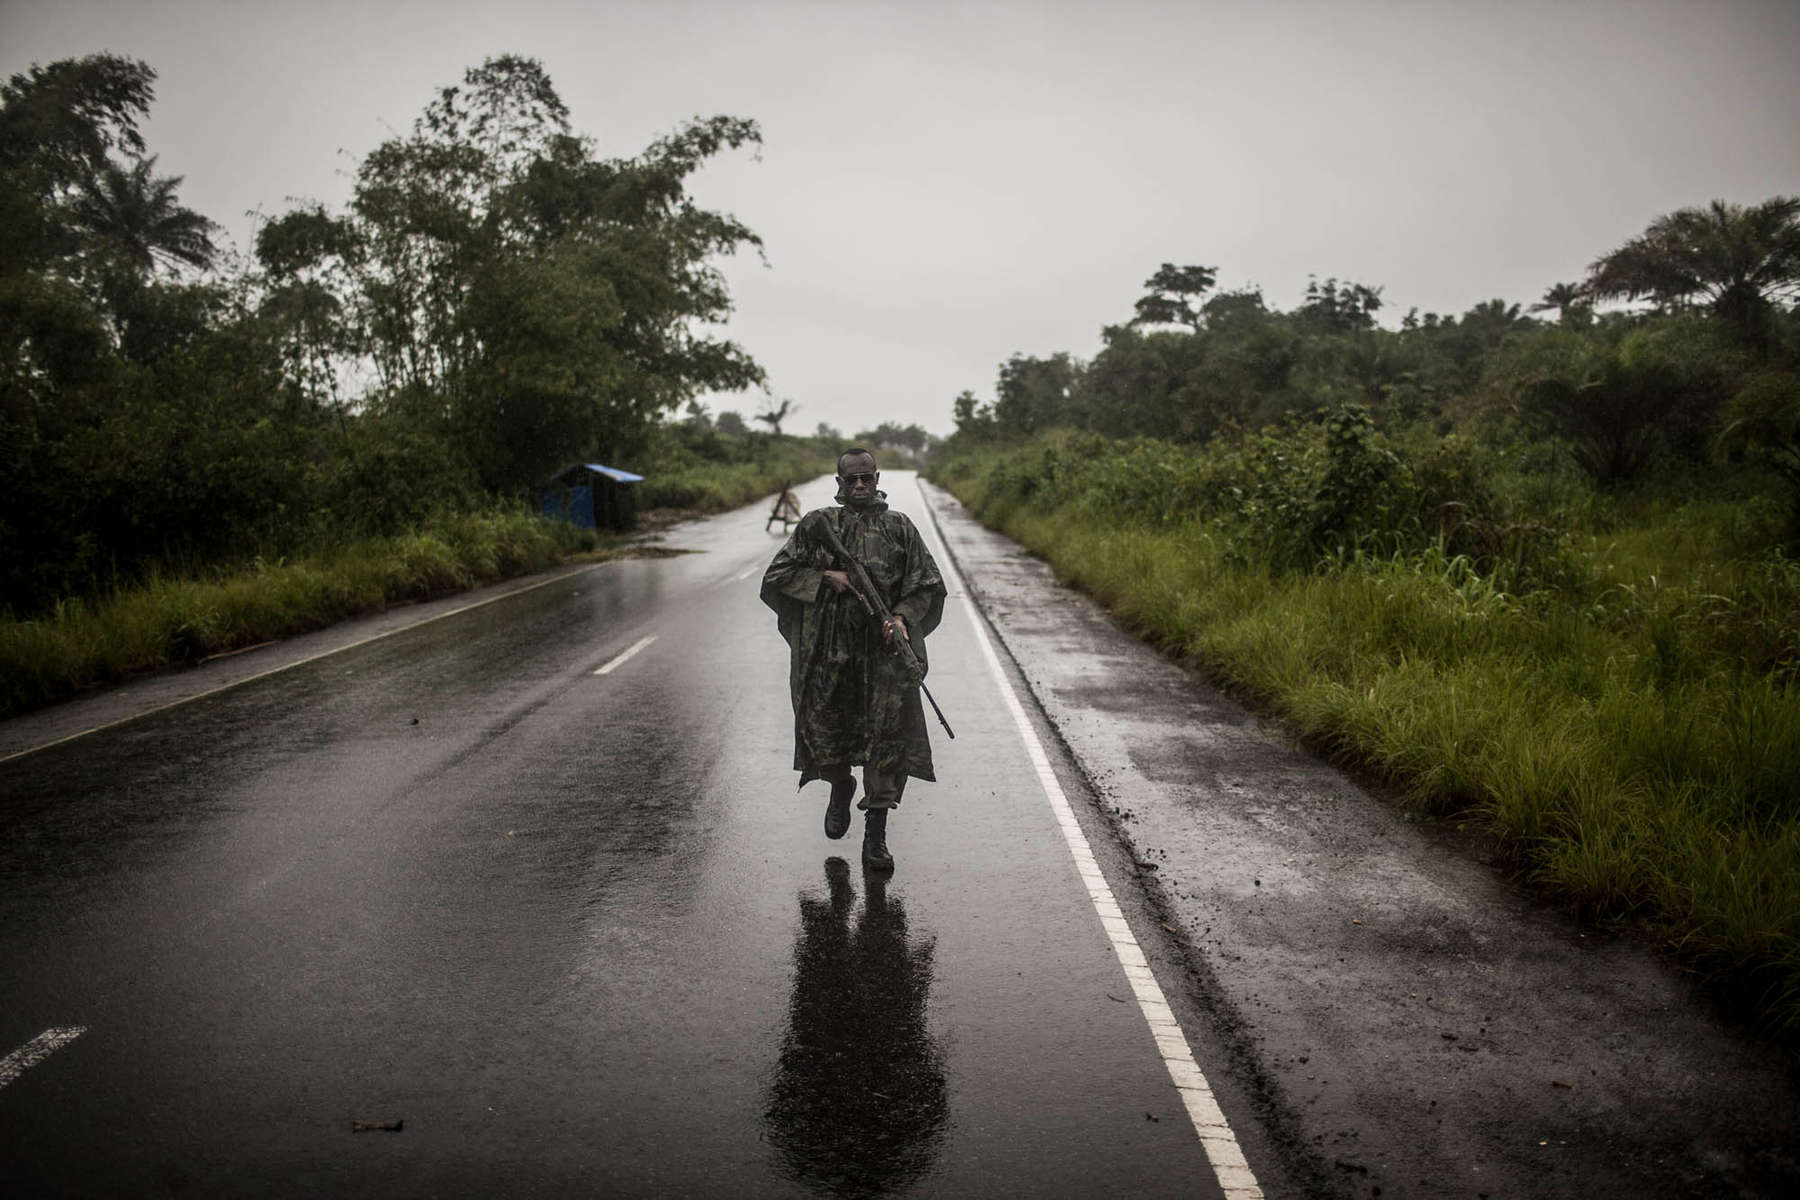 A Sierra Leonean solider mans a checkpoint on the road from Freetown to Kenema on Friday, August 22, 2014. Sierra Leone's police and military have established numerous checkpoints on roads leading into and out of Ebola-affected areas. Only trucks carrying essential goods and persons with government issued permission may cross the checkpoints.  (Pete Muller/Prime for the Washington Post) (Pete Muller/Prime for the Washington Post)